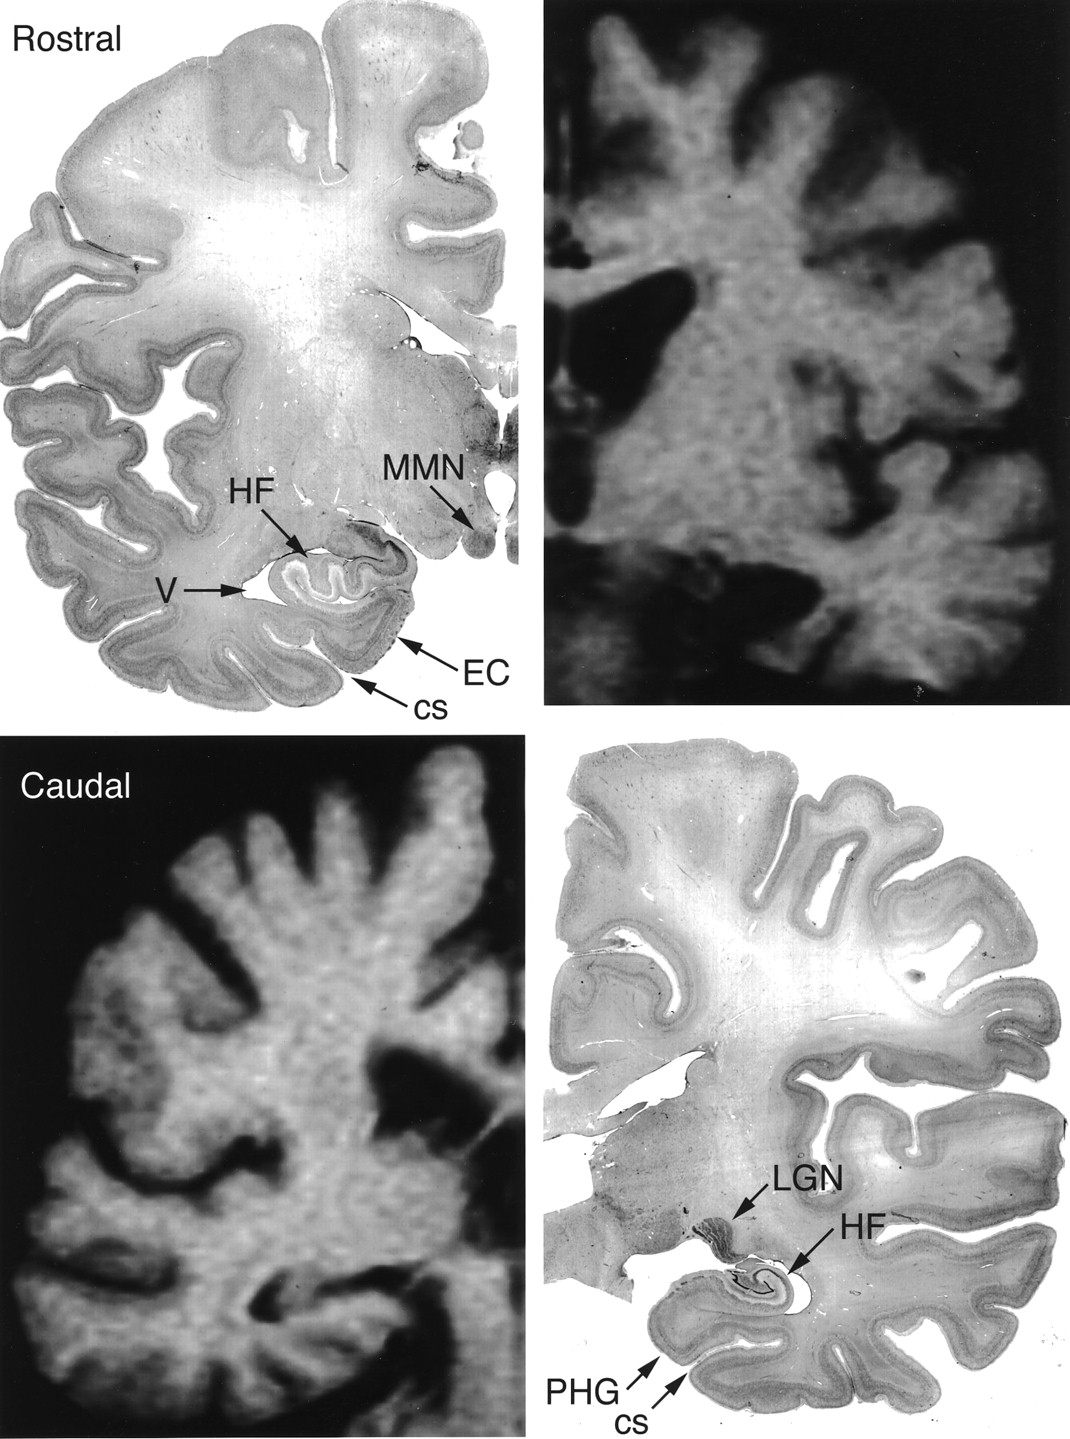 H Ms Medial Temporal Lobe Lesion Findings From Magnetic